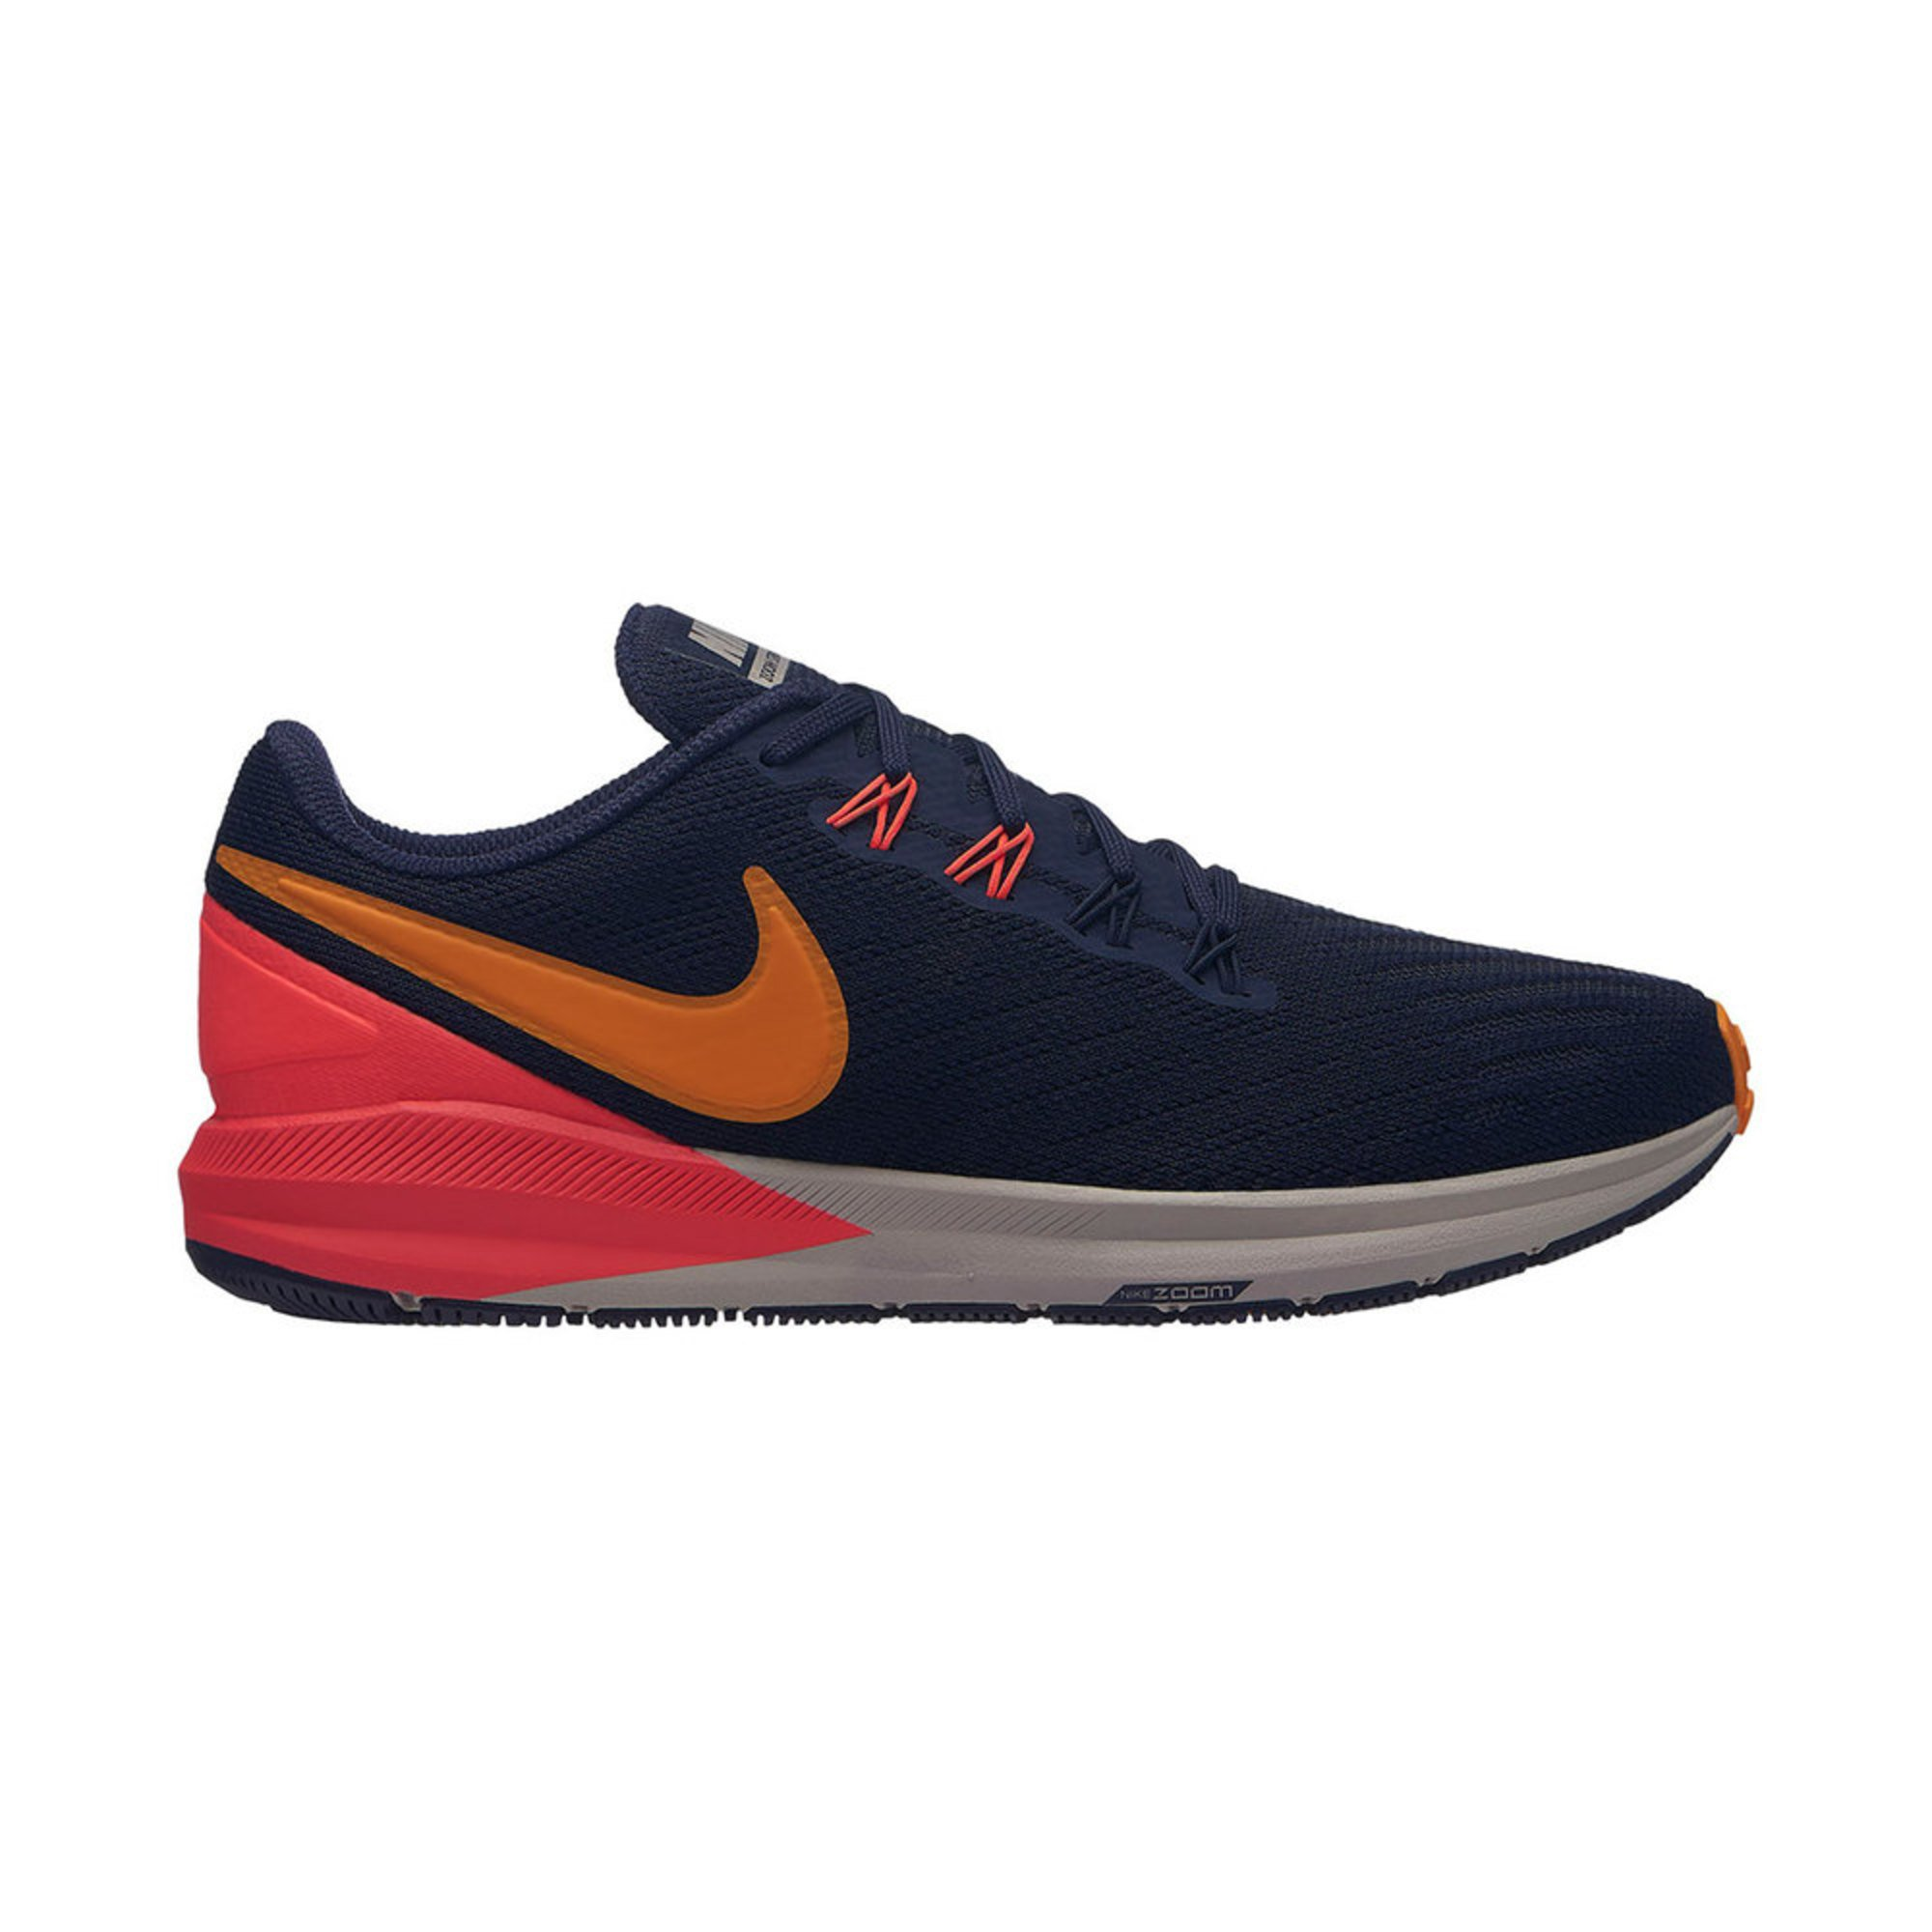 e5f19163cab Nike. Nike Women s Air Zoom Structure 22 Running Shoe